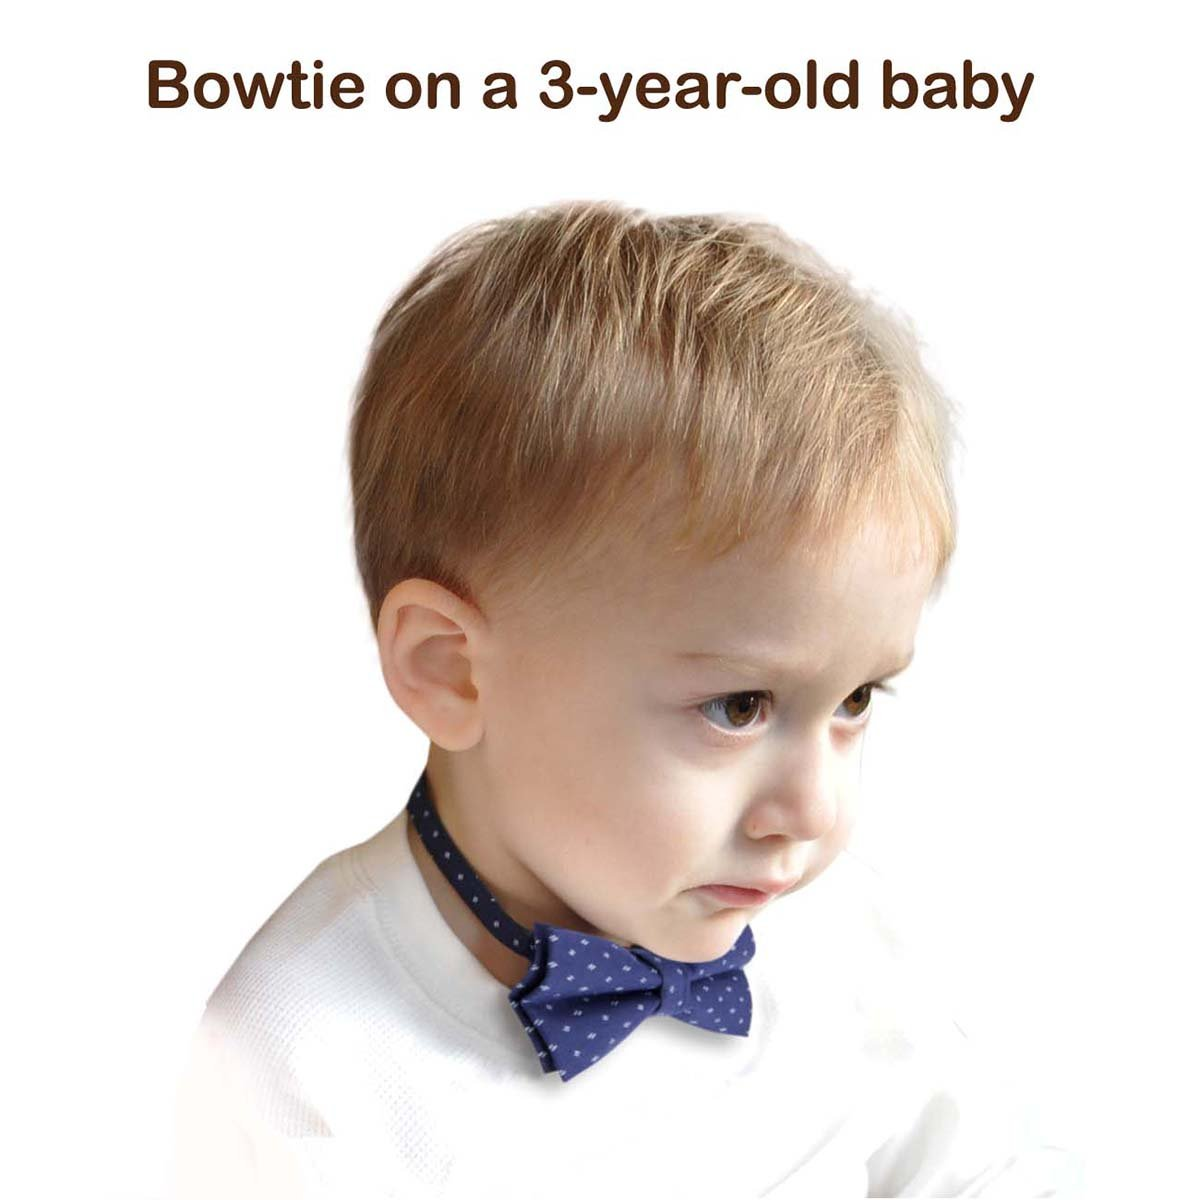 Designer Cotton Bow Tie Adjustable Bowtie for Baby Boys and Kids